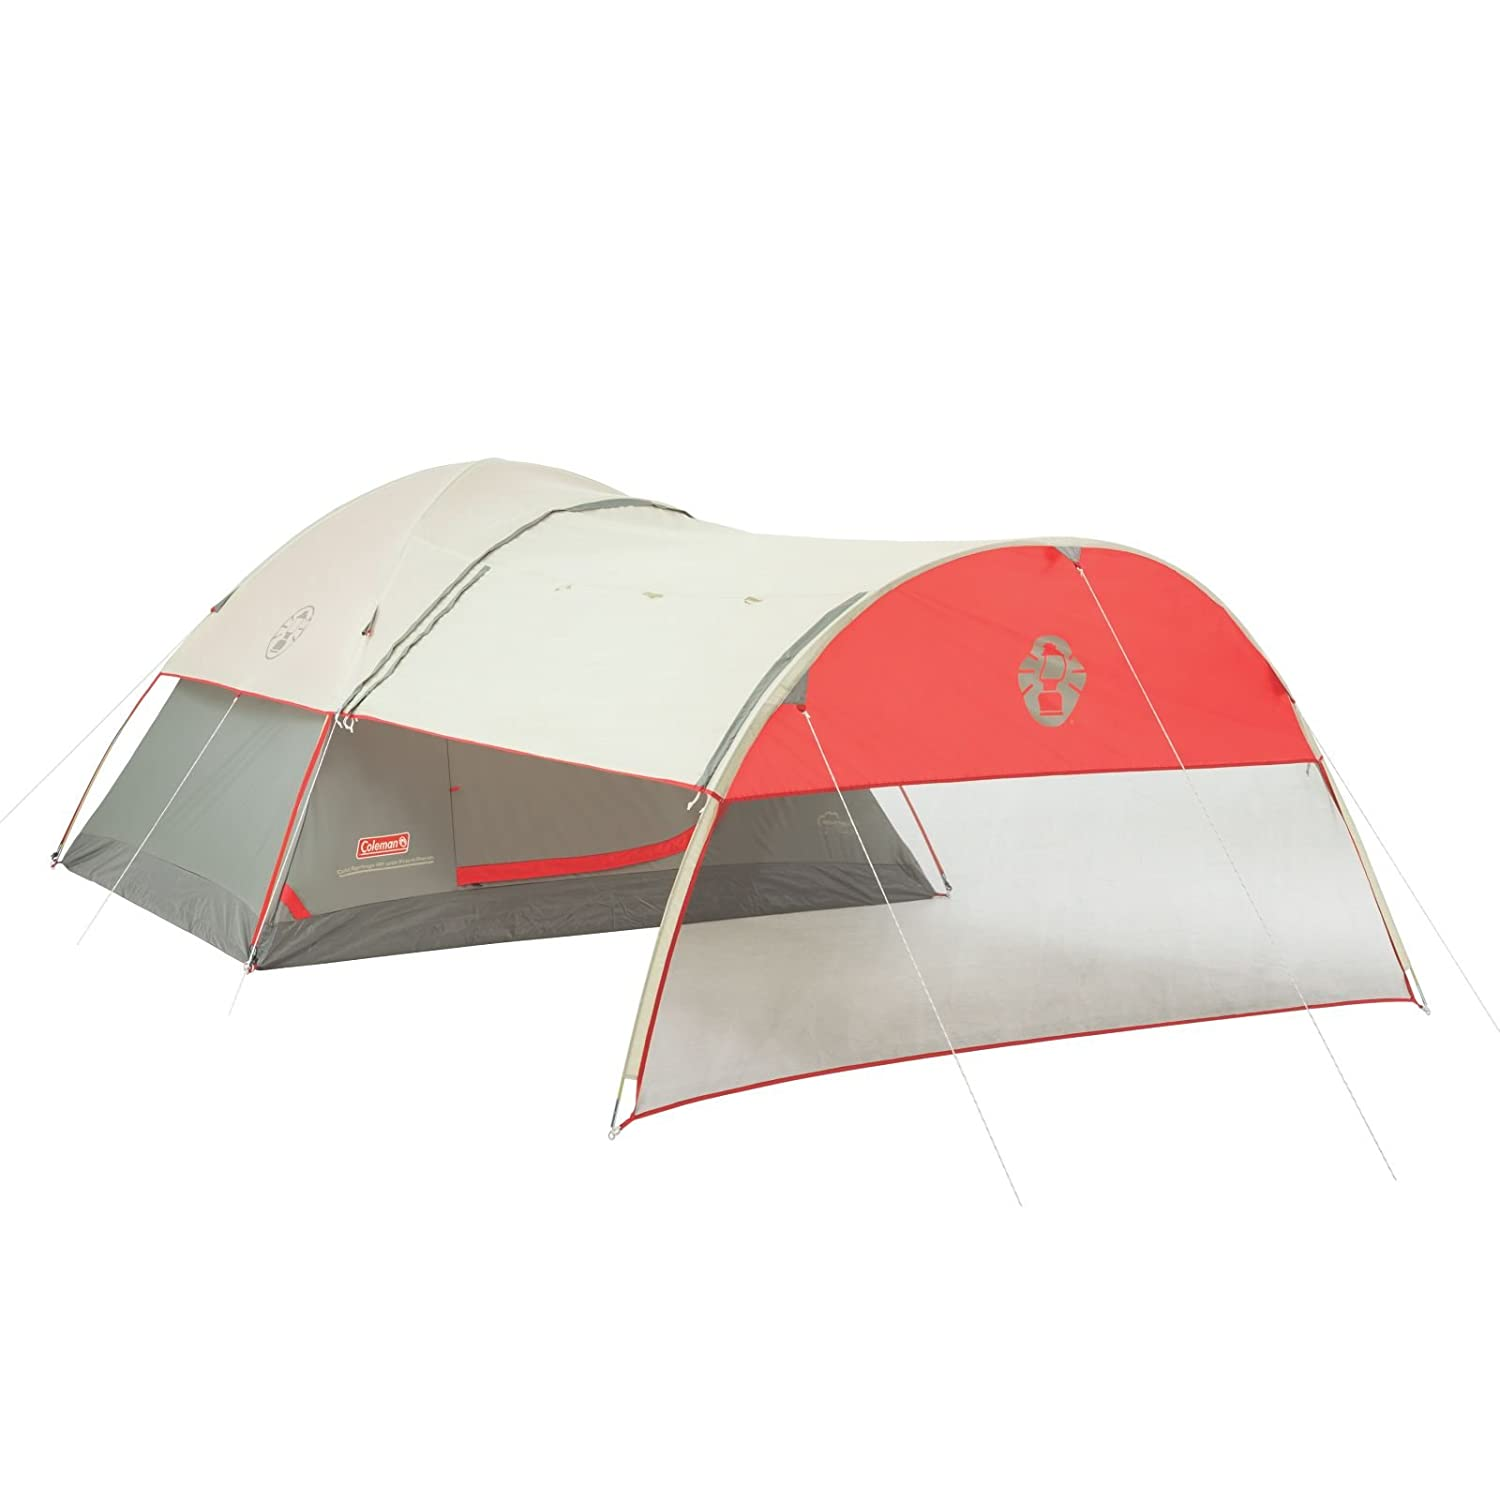 post click outdoor awning canvas trailer details uploaded enlarge images coleman related and tent reviews camping porch square for up member to pole extension set